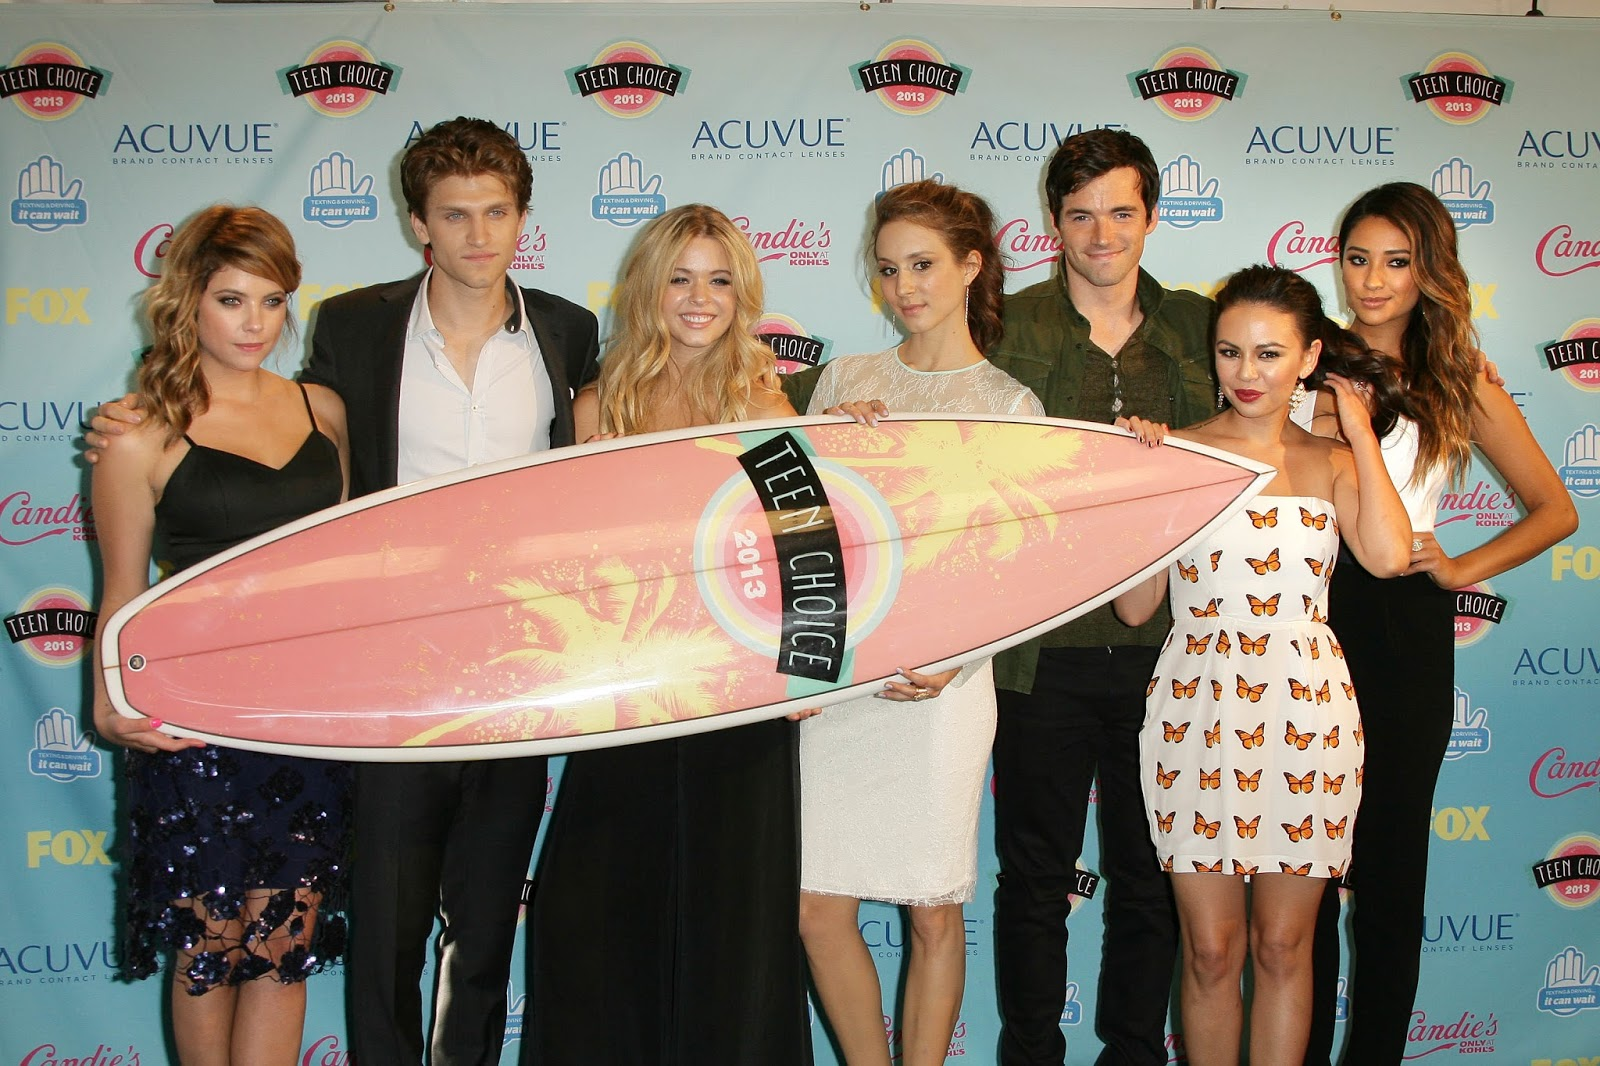 Teen Choice Awards 2013:pilation Of Photos And Videos Of The Pll Cast All  Things How To Eat Fried Worms